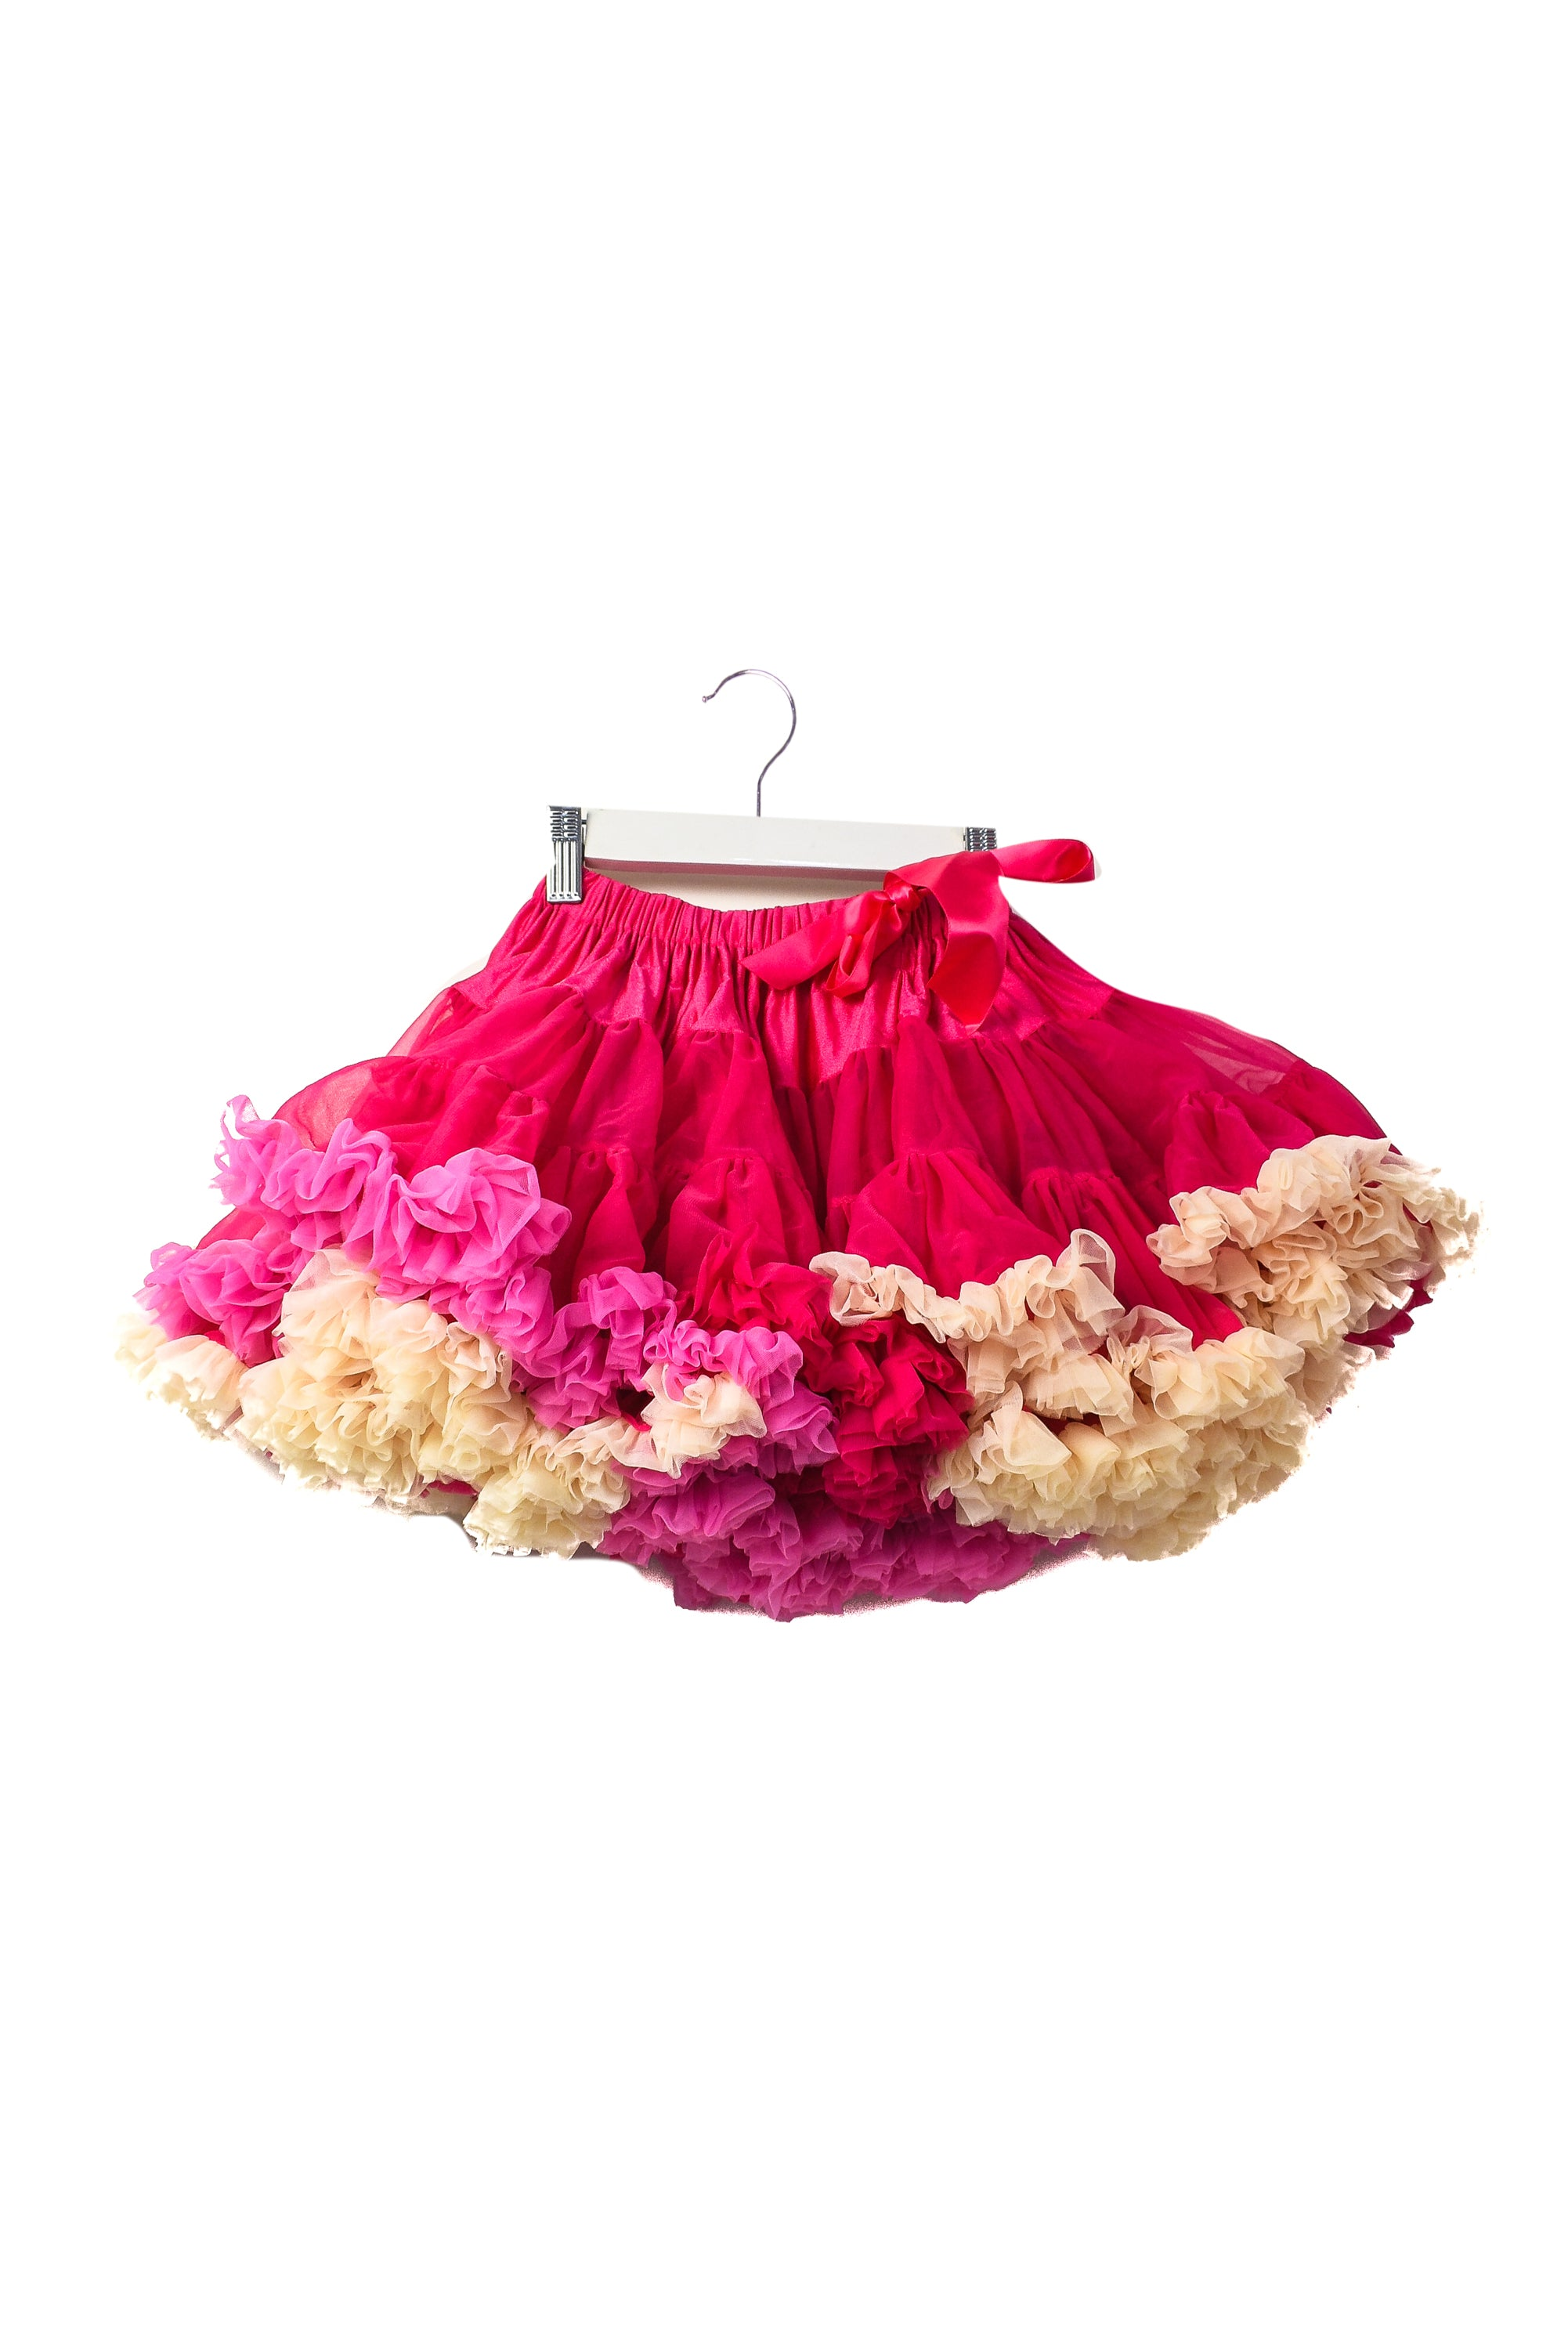 10044321B Angel's Face Kids~Mid Skirt 4-6T at Retykle